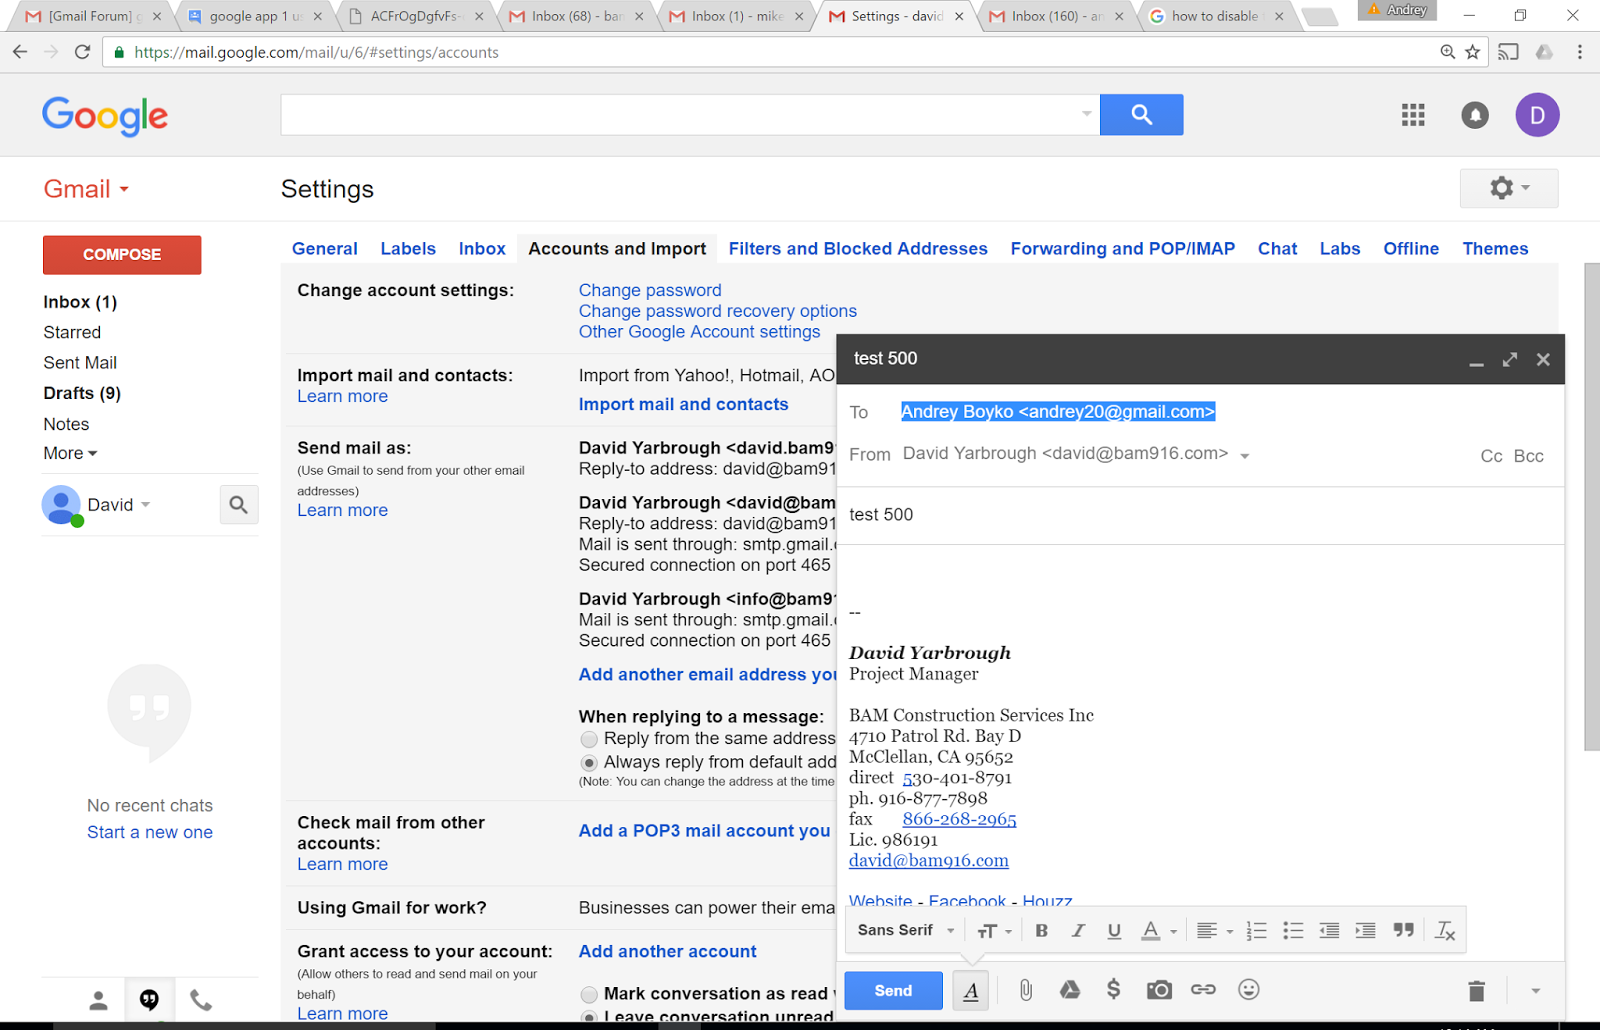 google app 1 user and multiple aliases, when send mal as